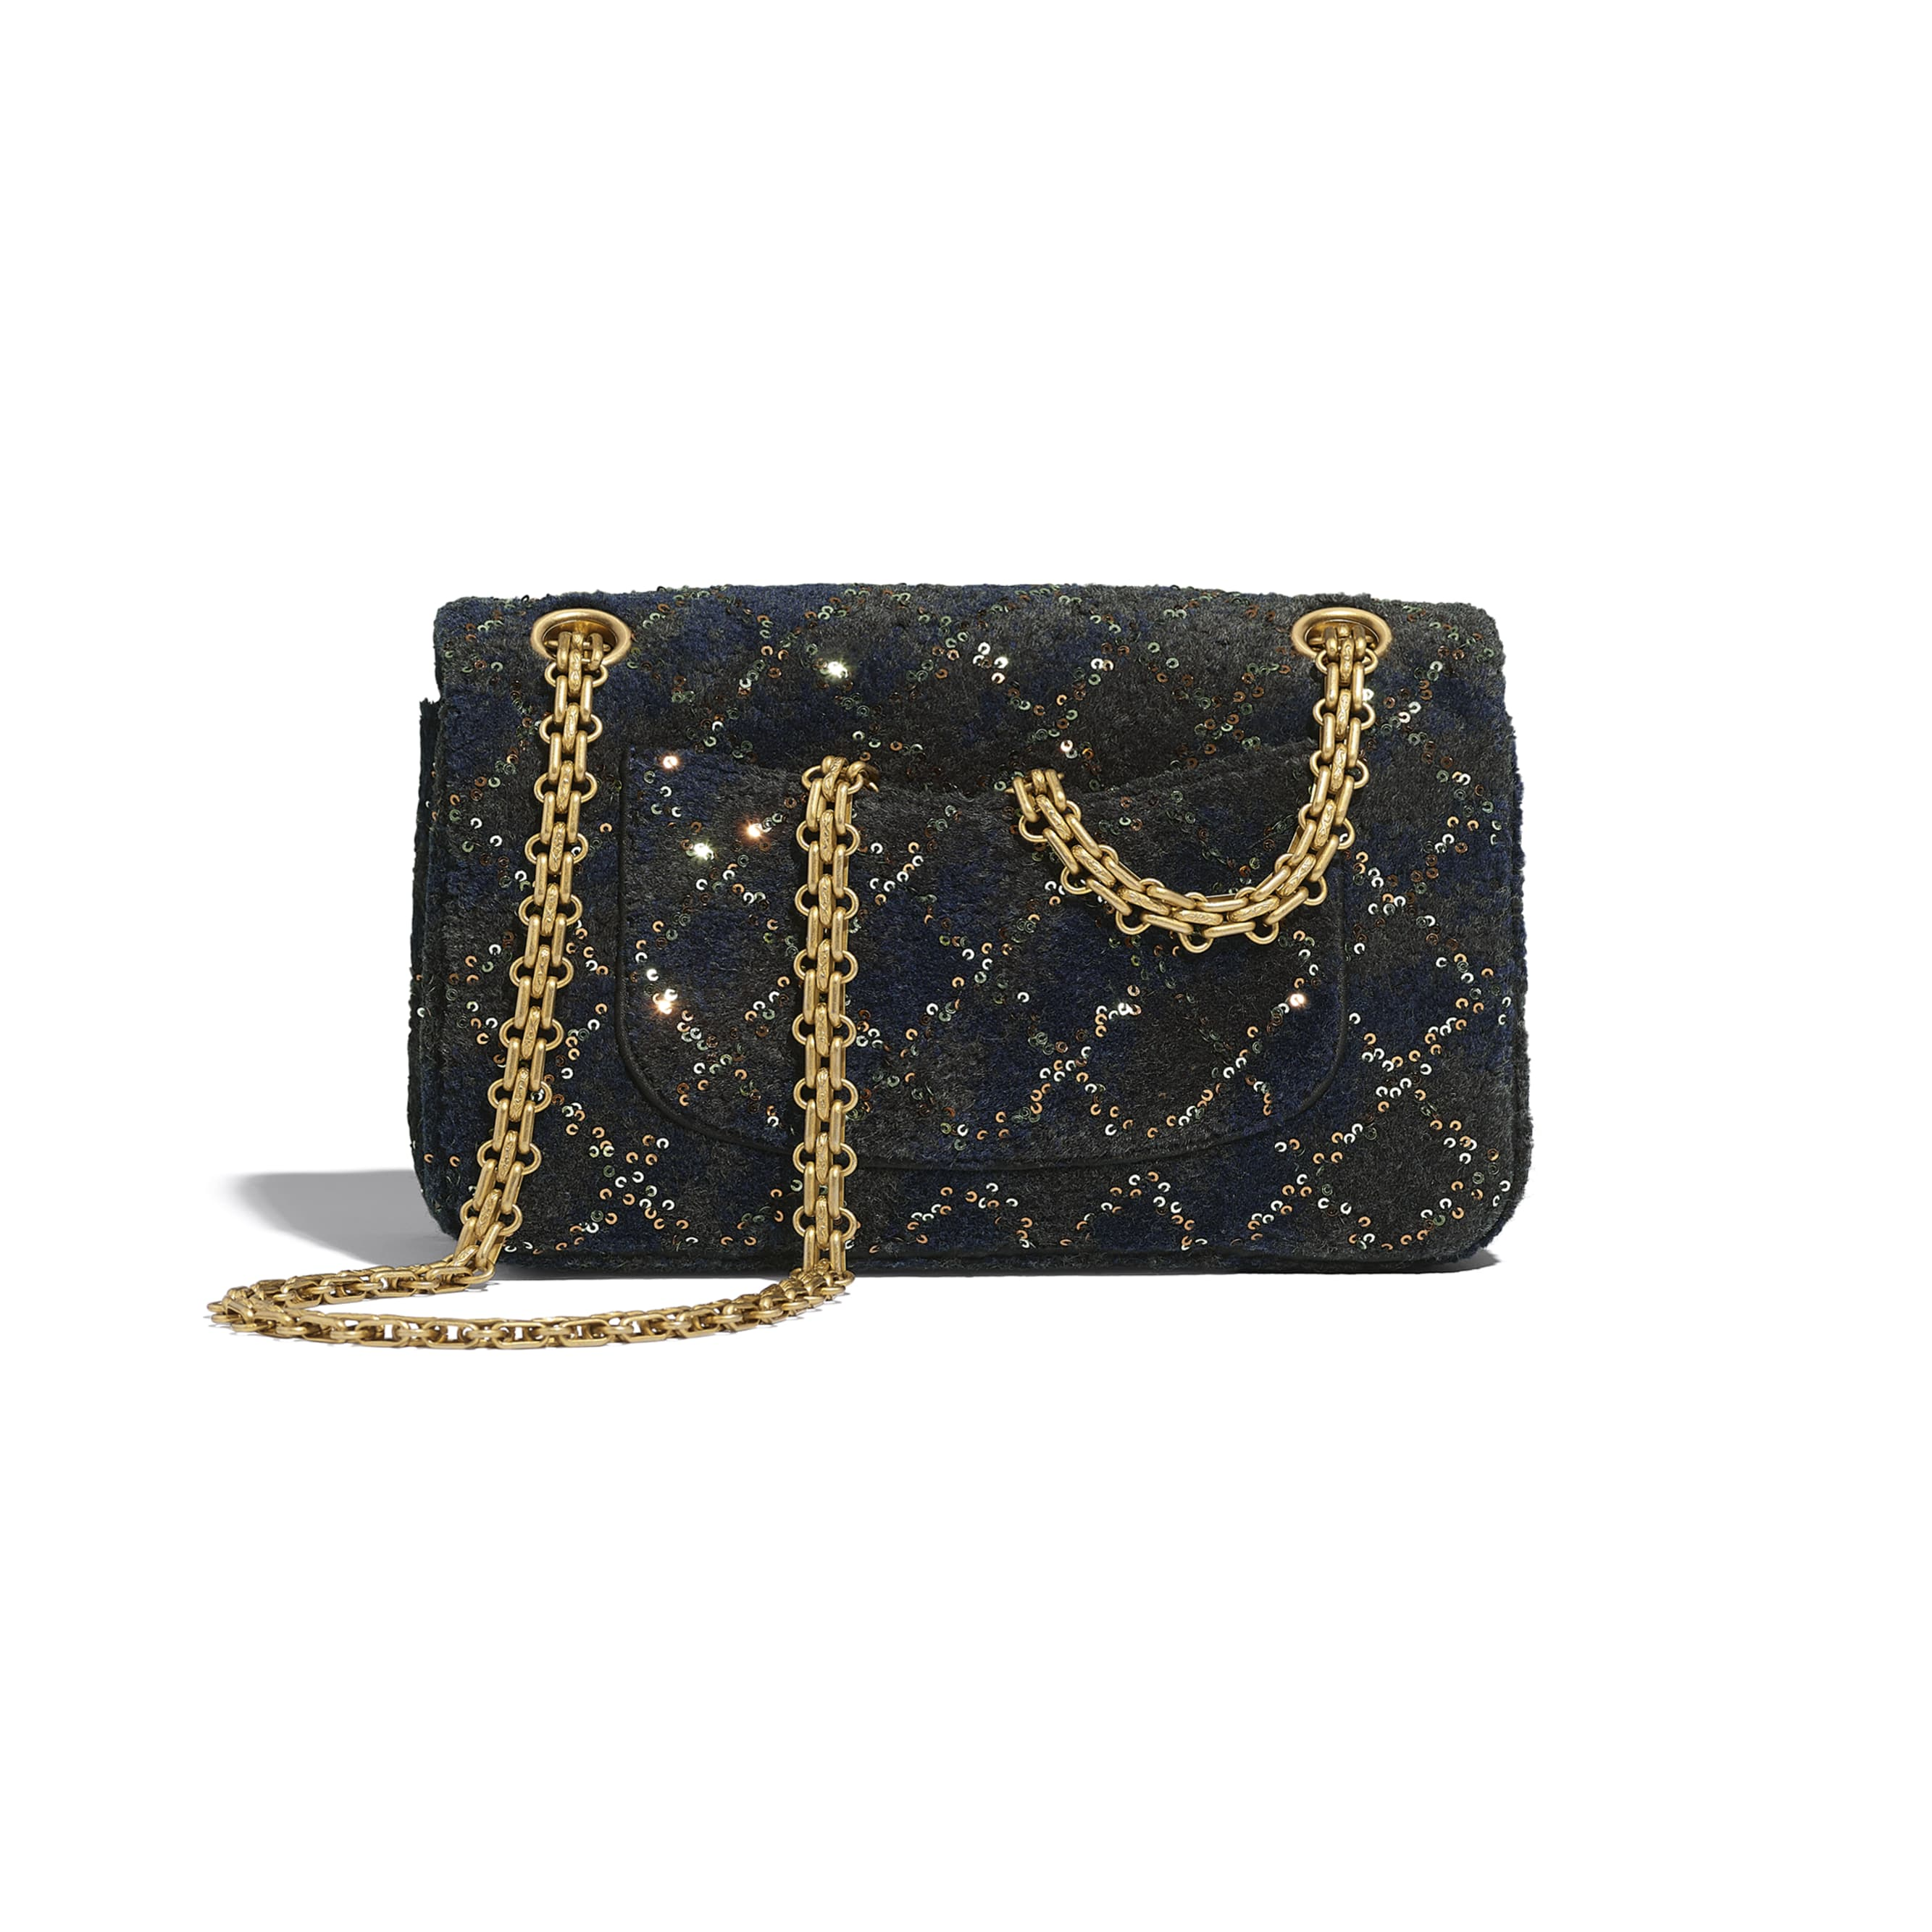 Small 2.55 Handbag - Navy Blue - Wool, Mixed Fibers, Sequins & Gold-Tone Metal - CHANEL - Alternative view - see standard sized version